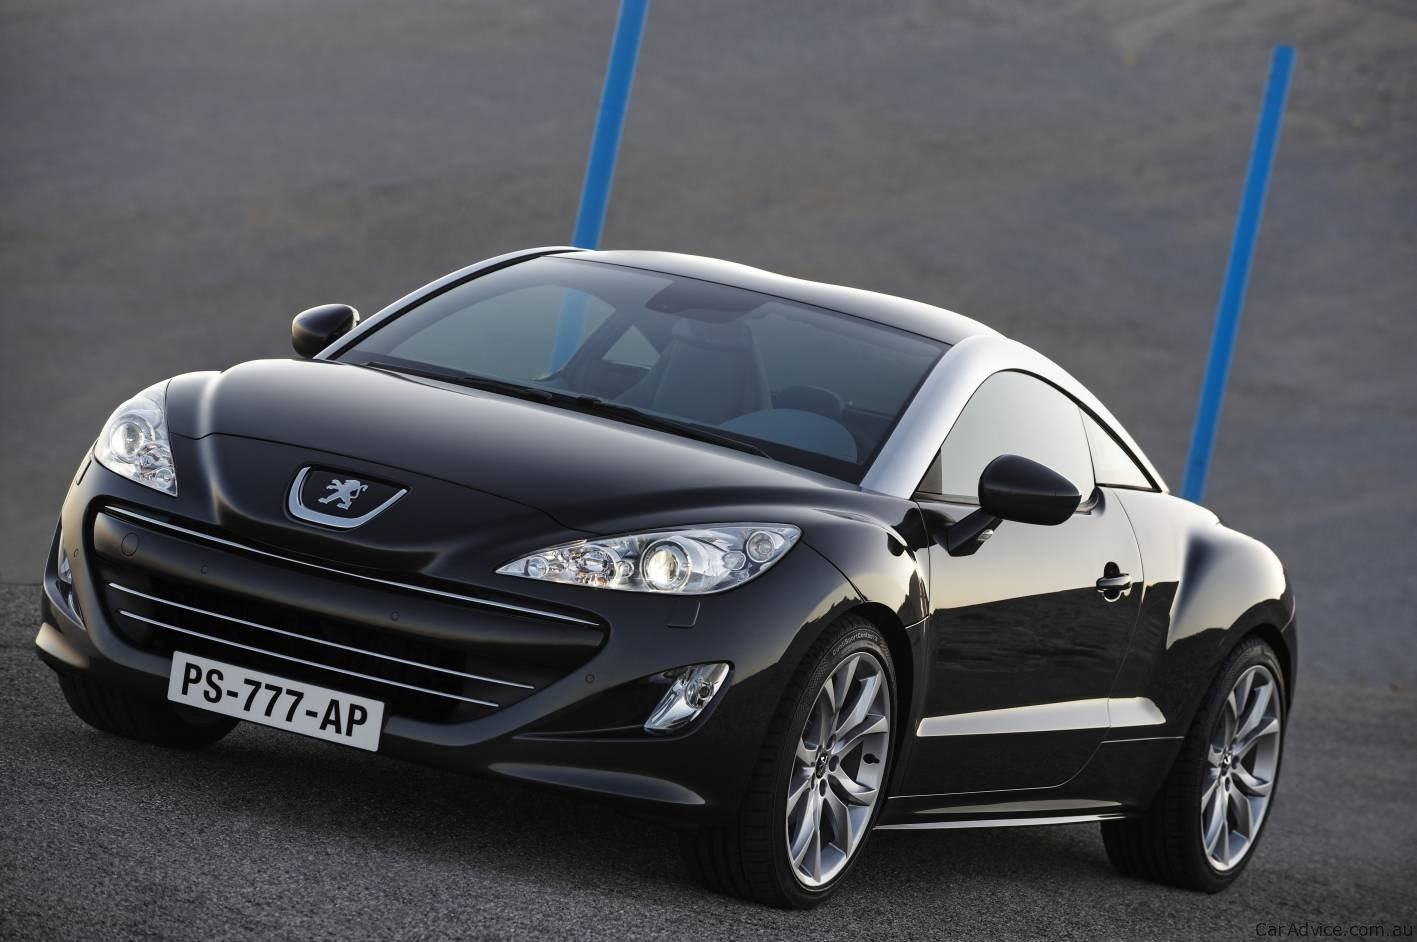 peugeot rcz sports coupe orders  exceed allocation  caradvice